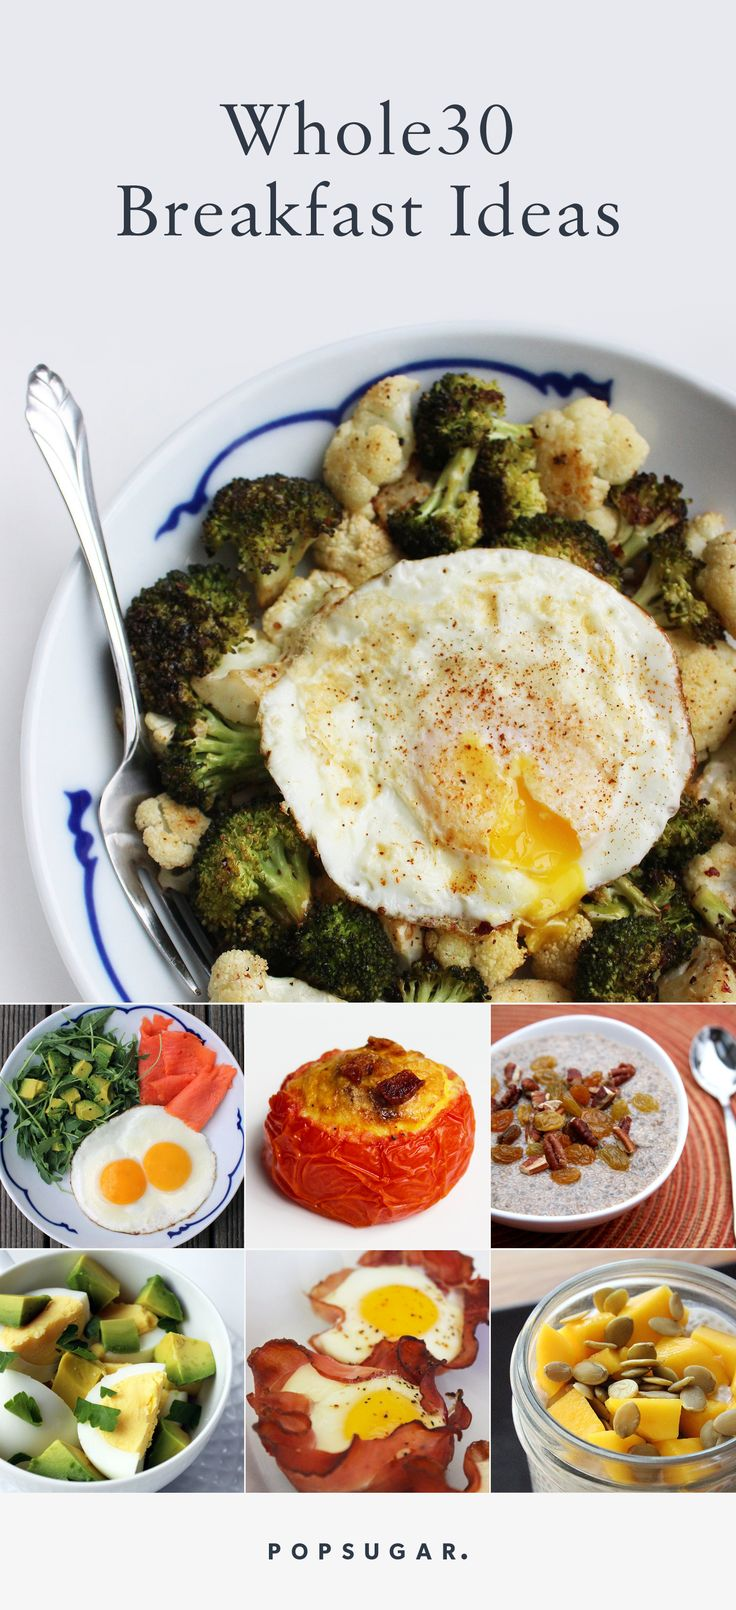 These Whole30-approved breakfast ideas are simple to put together, are… | popsugar #Power_Breakfast #Whole30